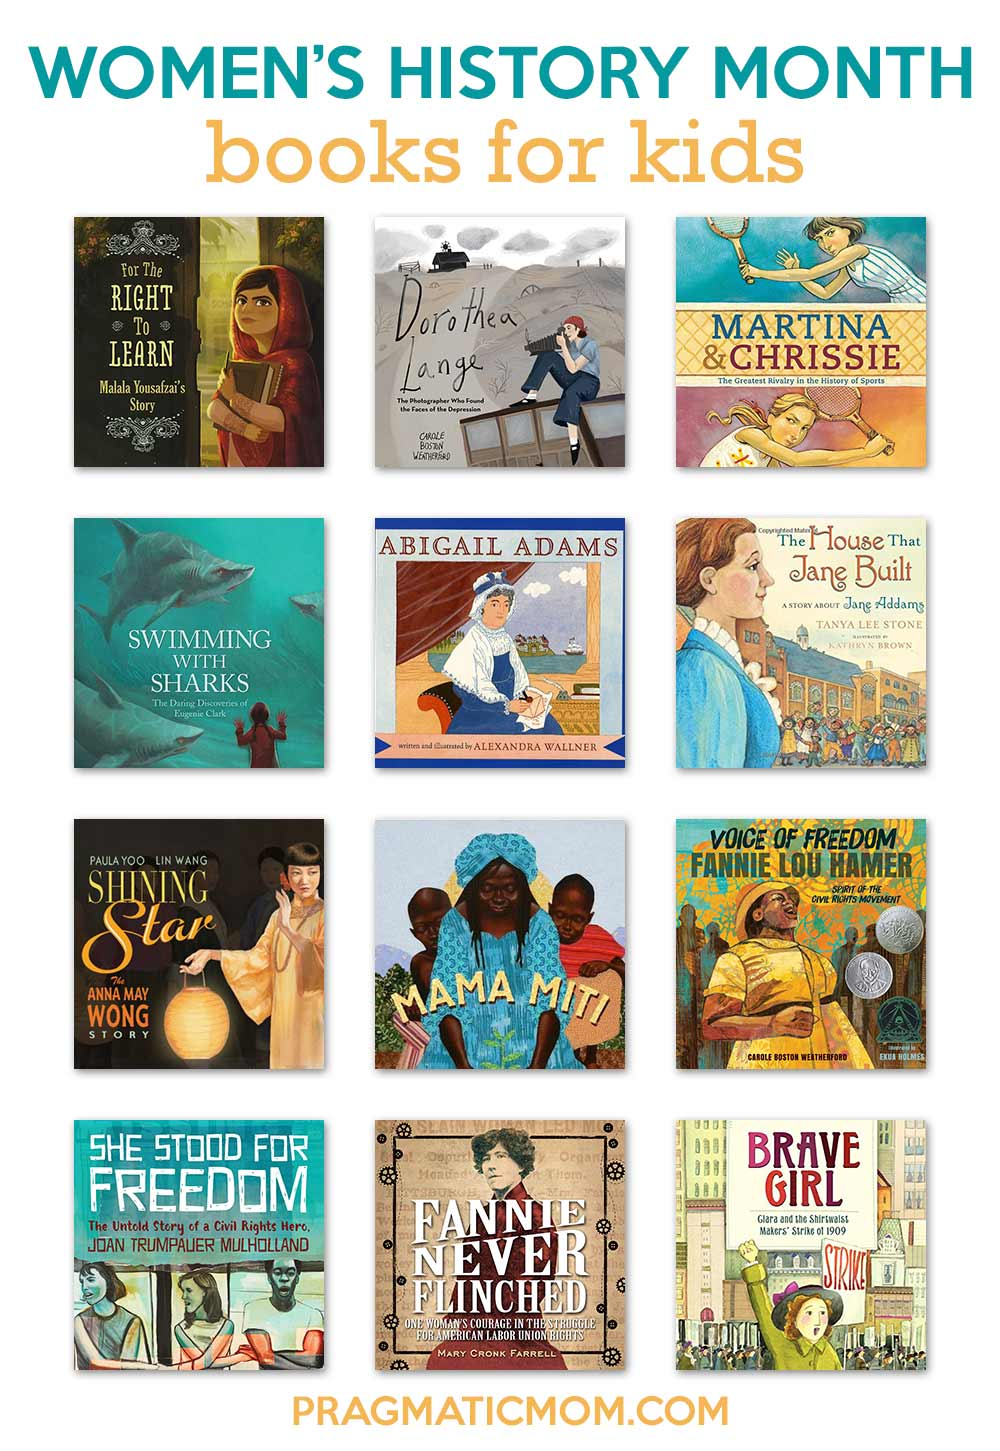 Women's History Month books for kids